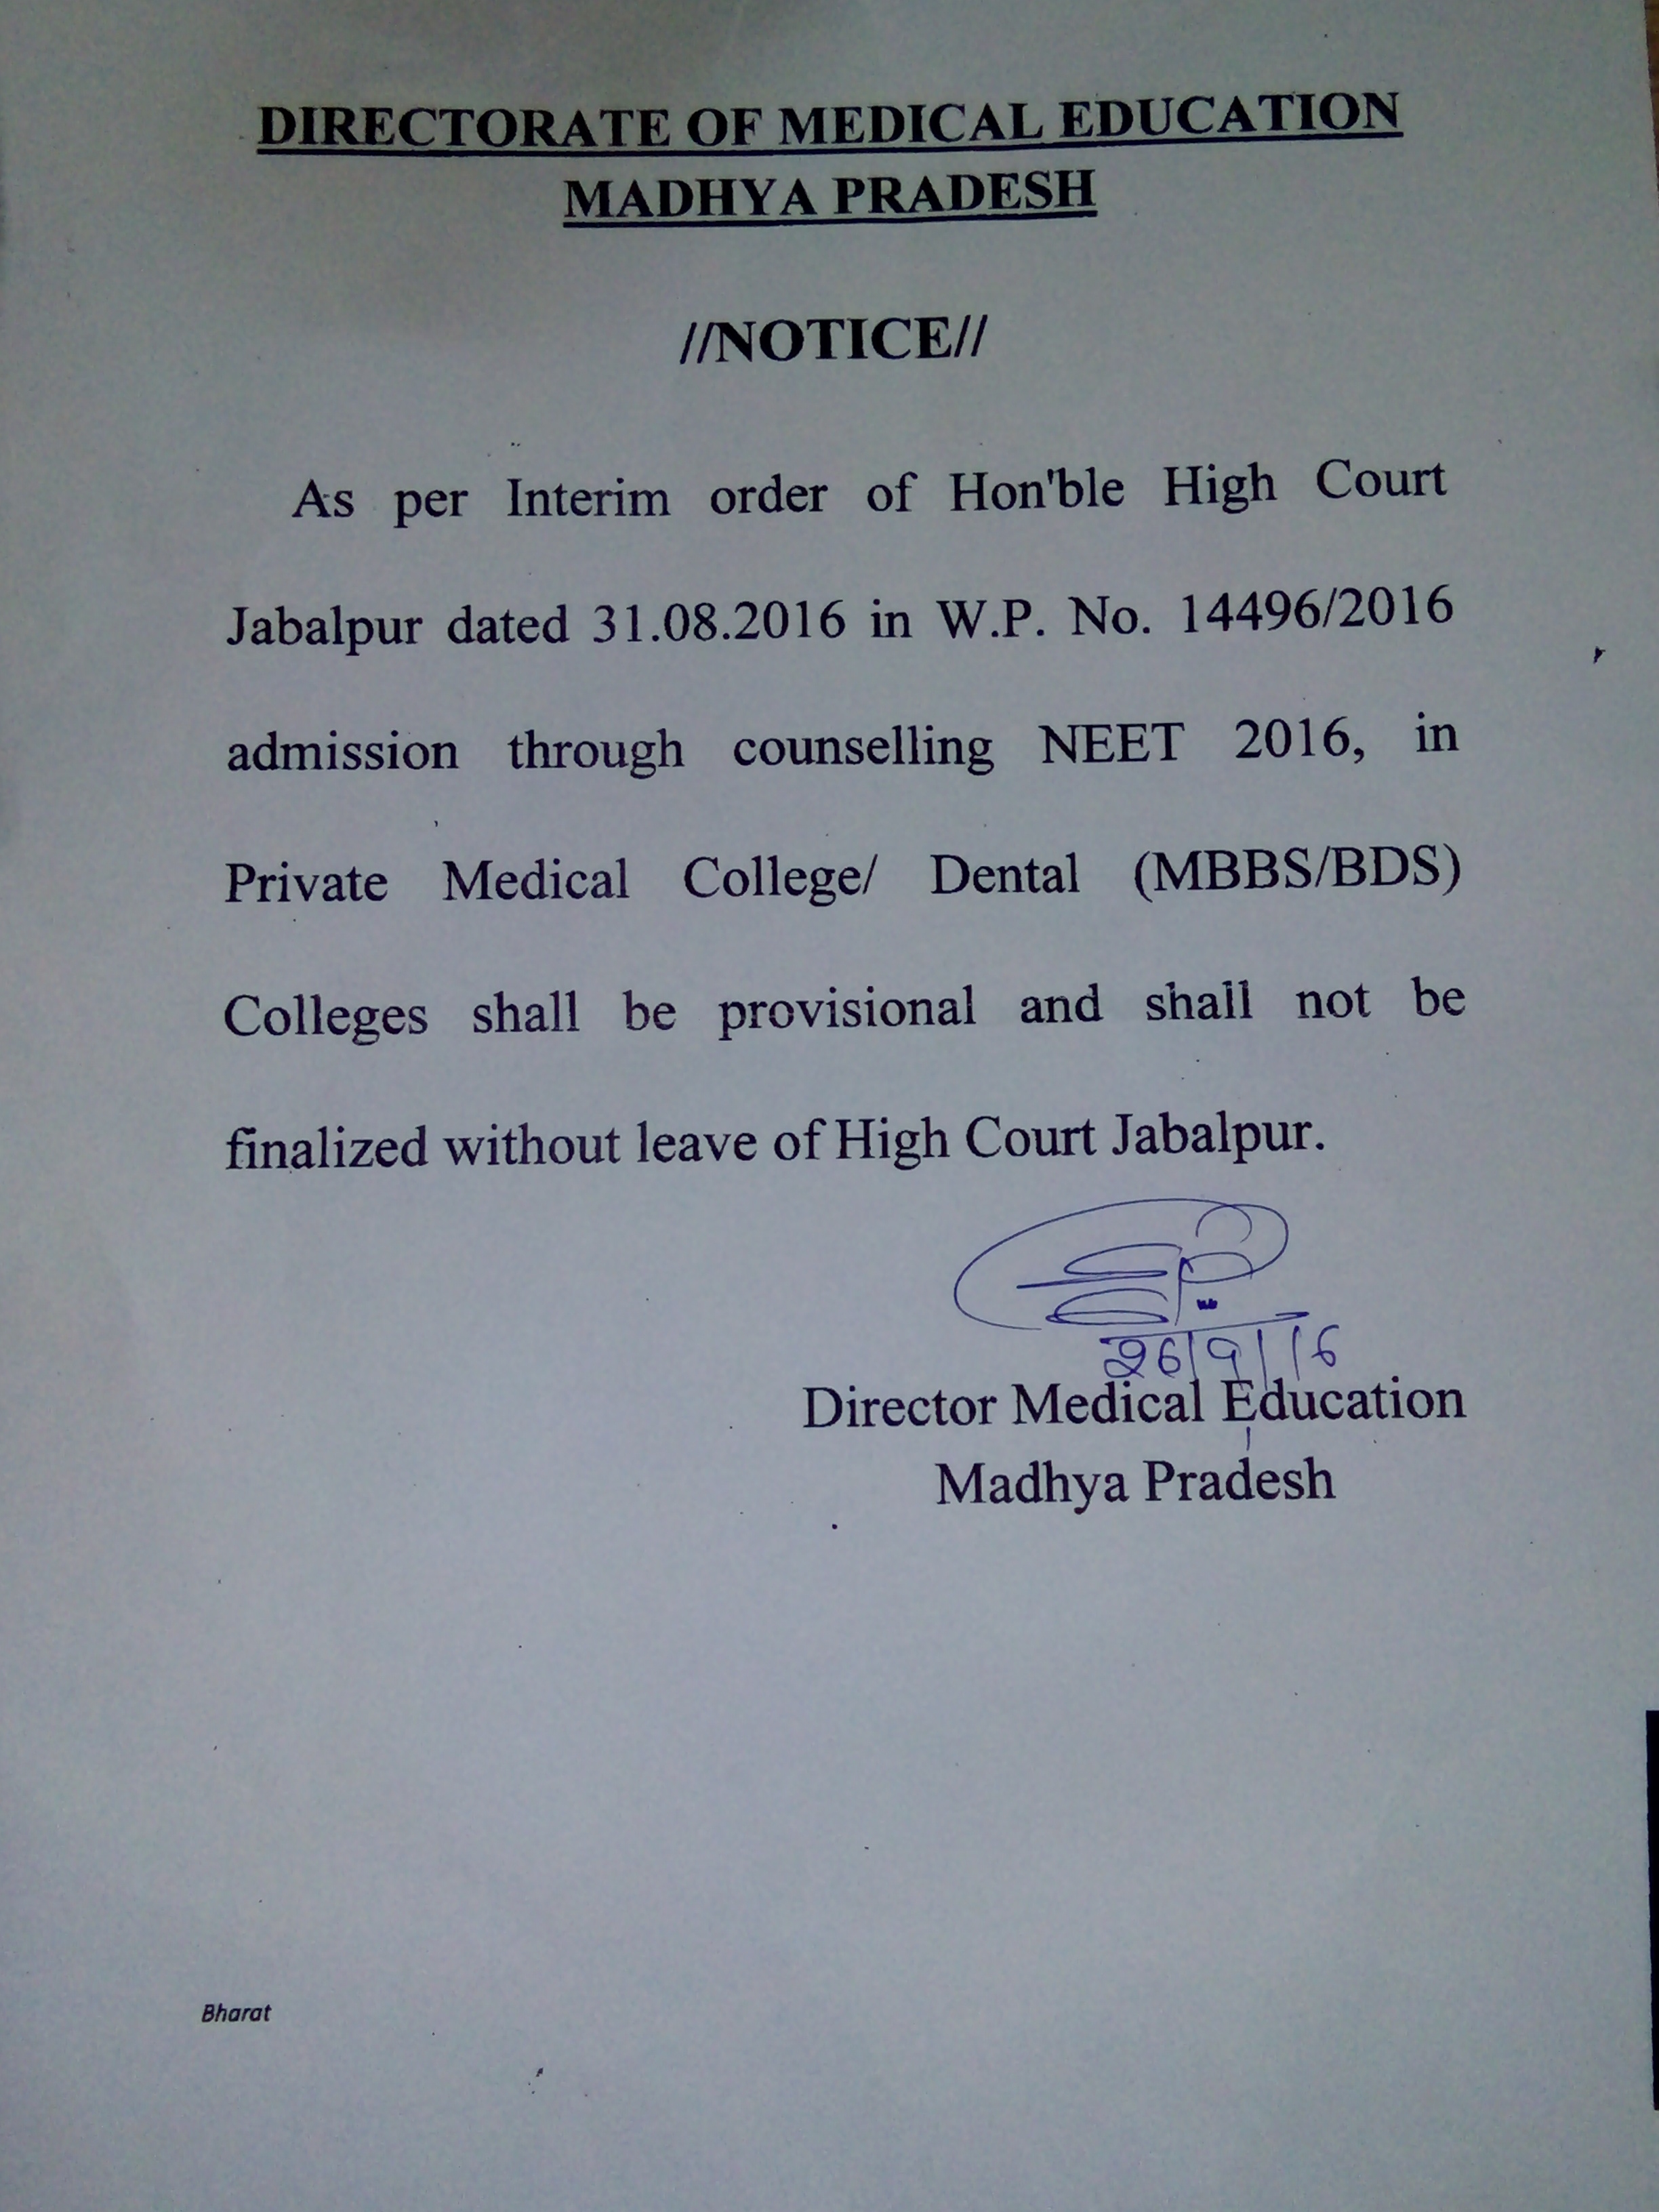 Directorate of Medical Education, Government of Madhya